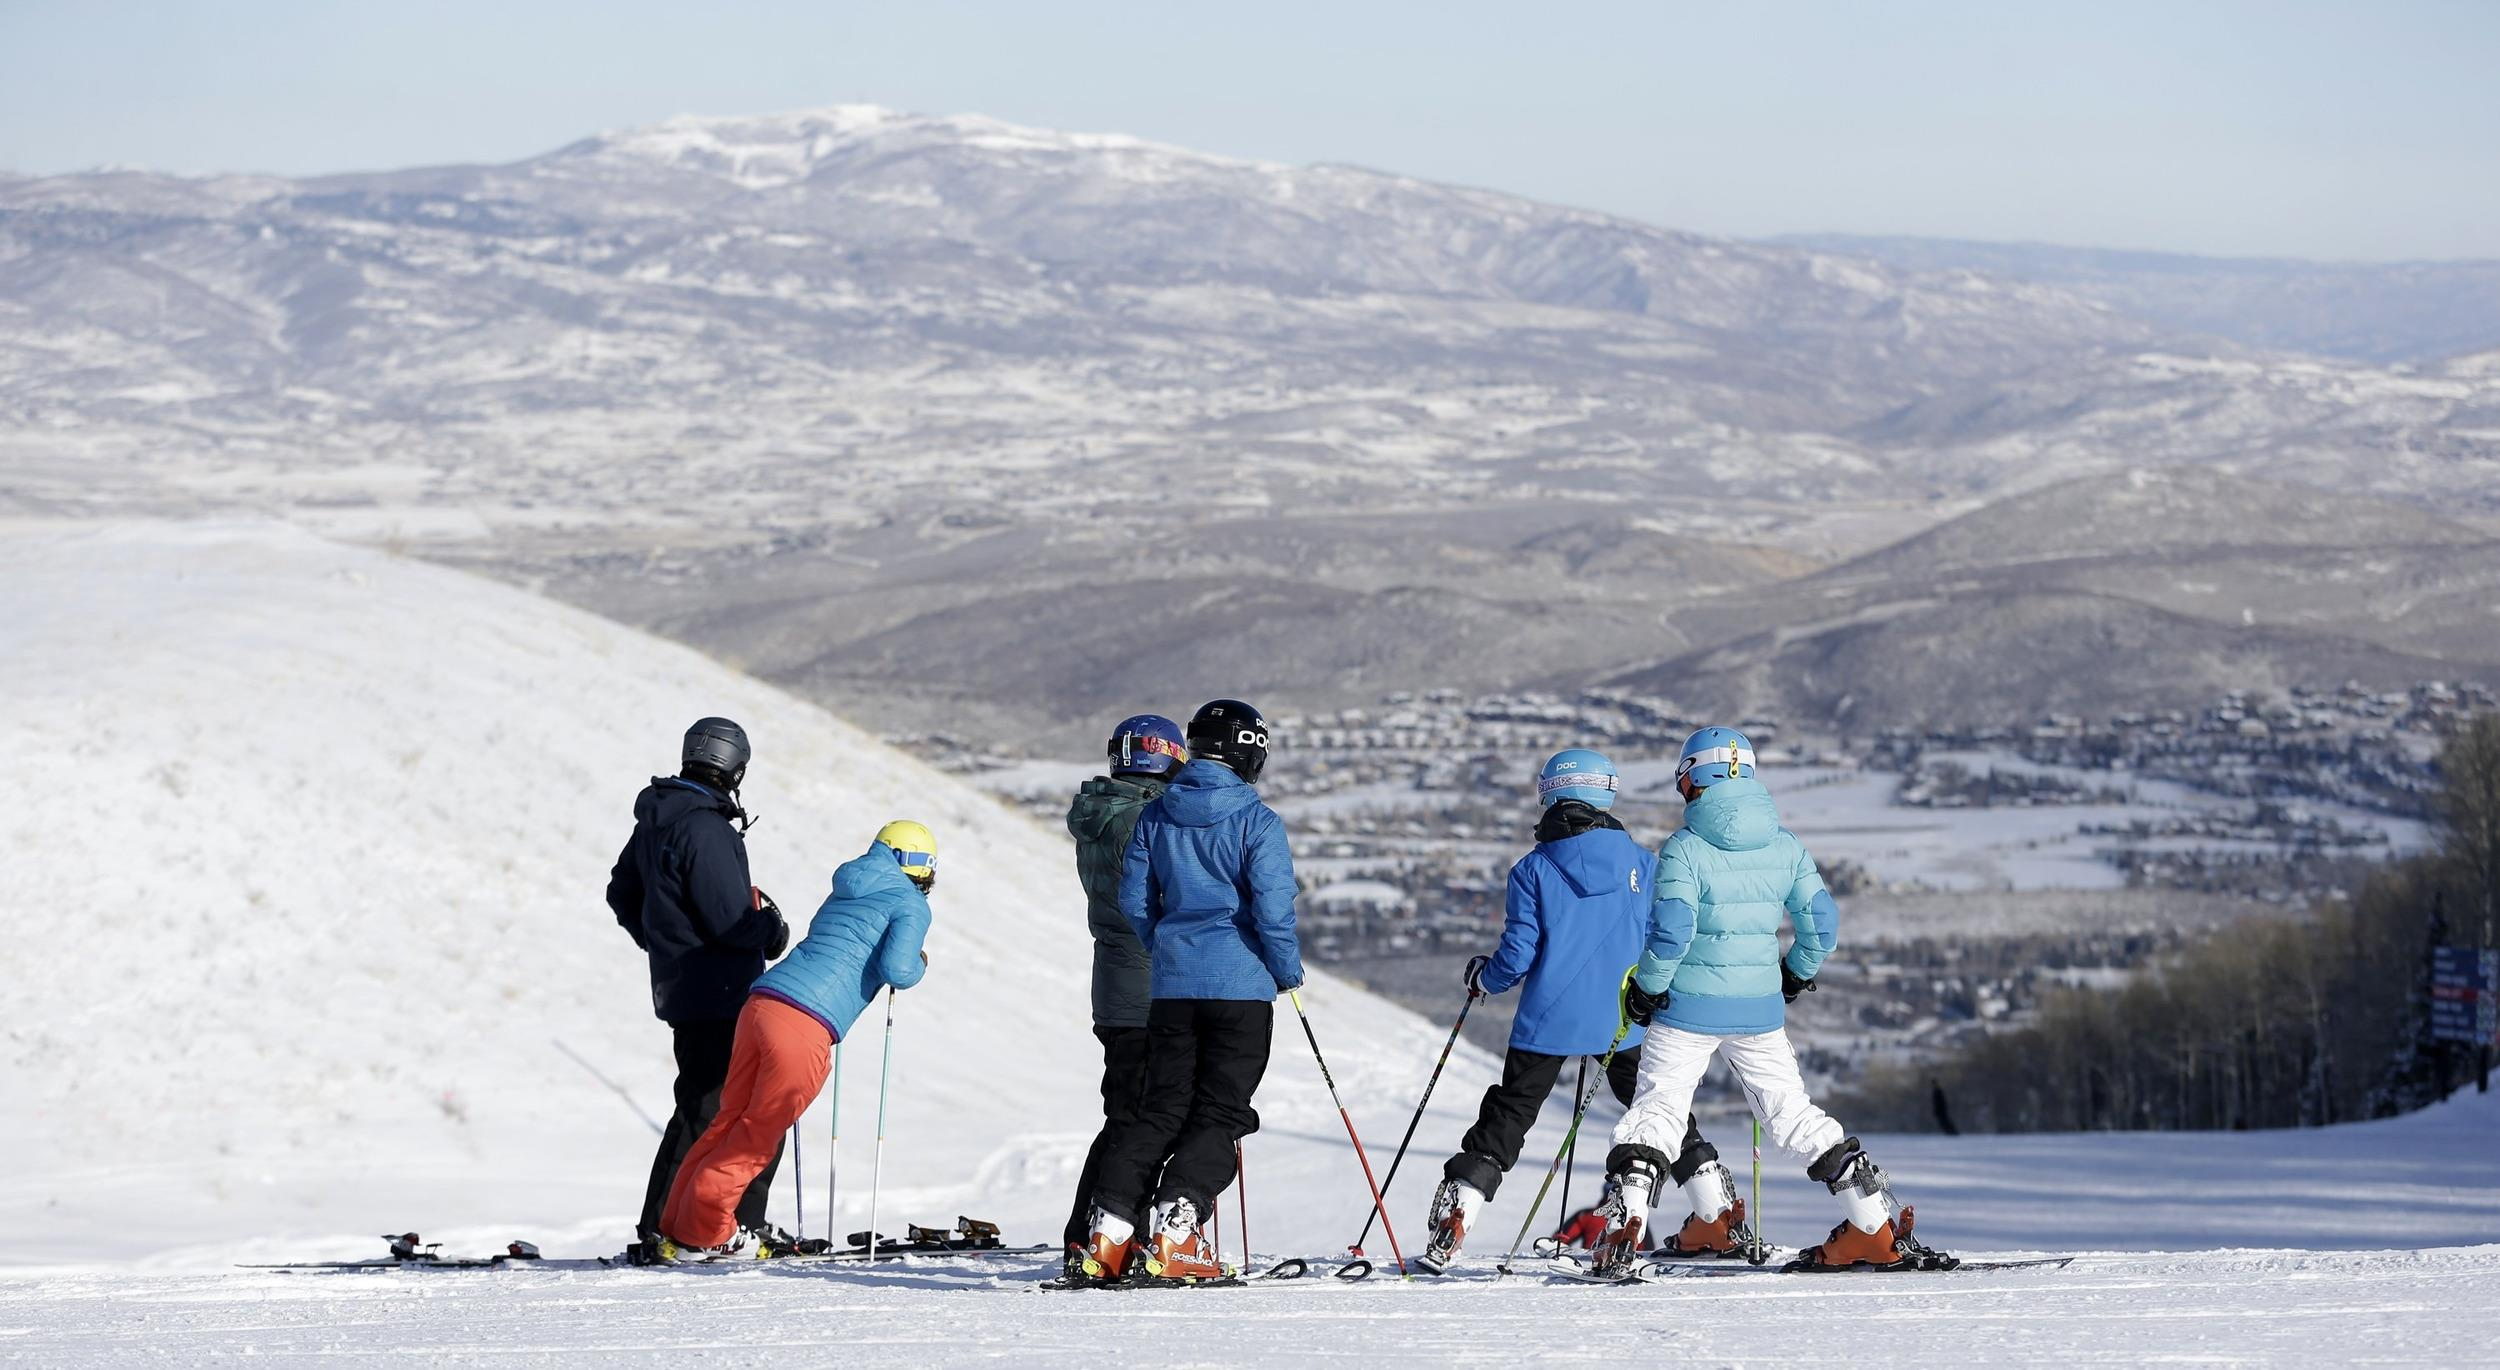 Image: Skiiers at Park City Mountain Resort in Park City, Utah